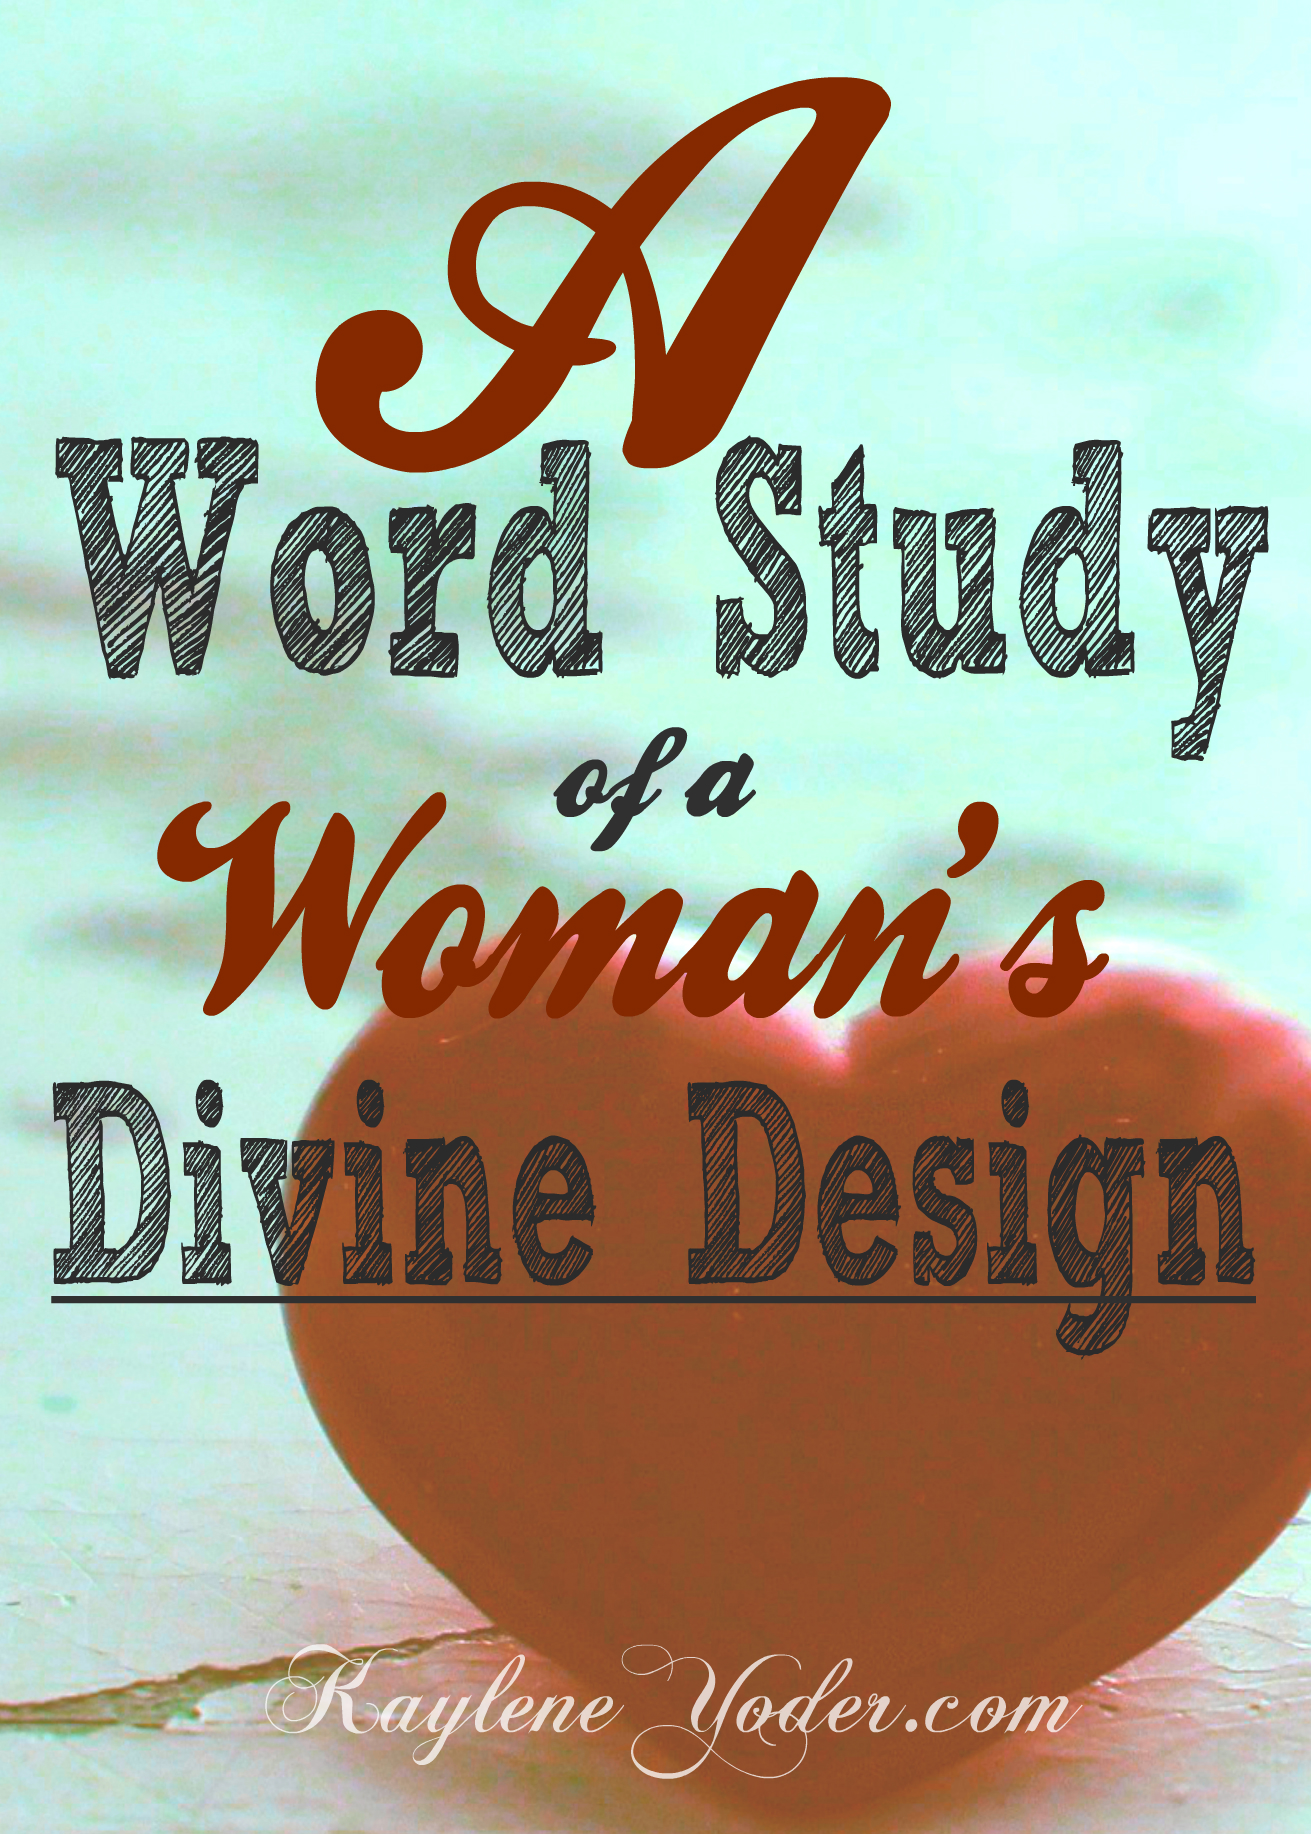 Designed Irreplaceable ~ A word study of a woman's worth